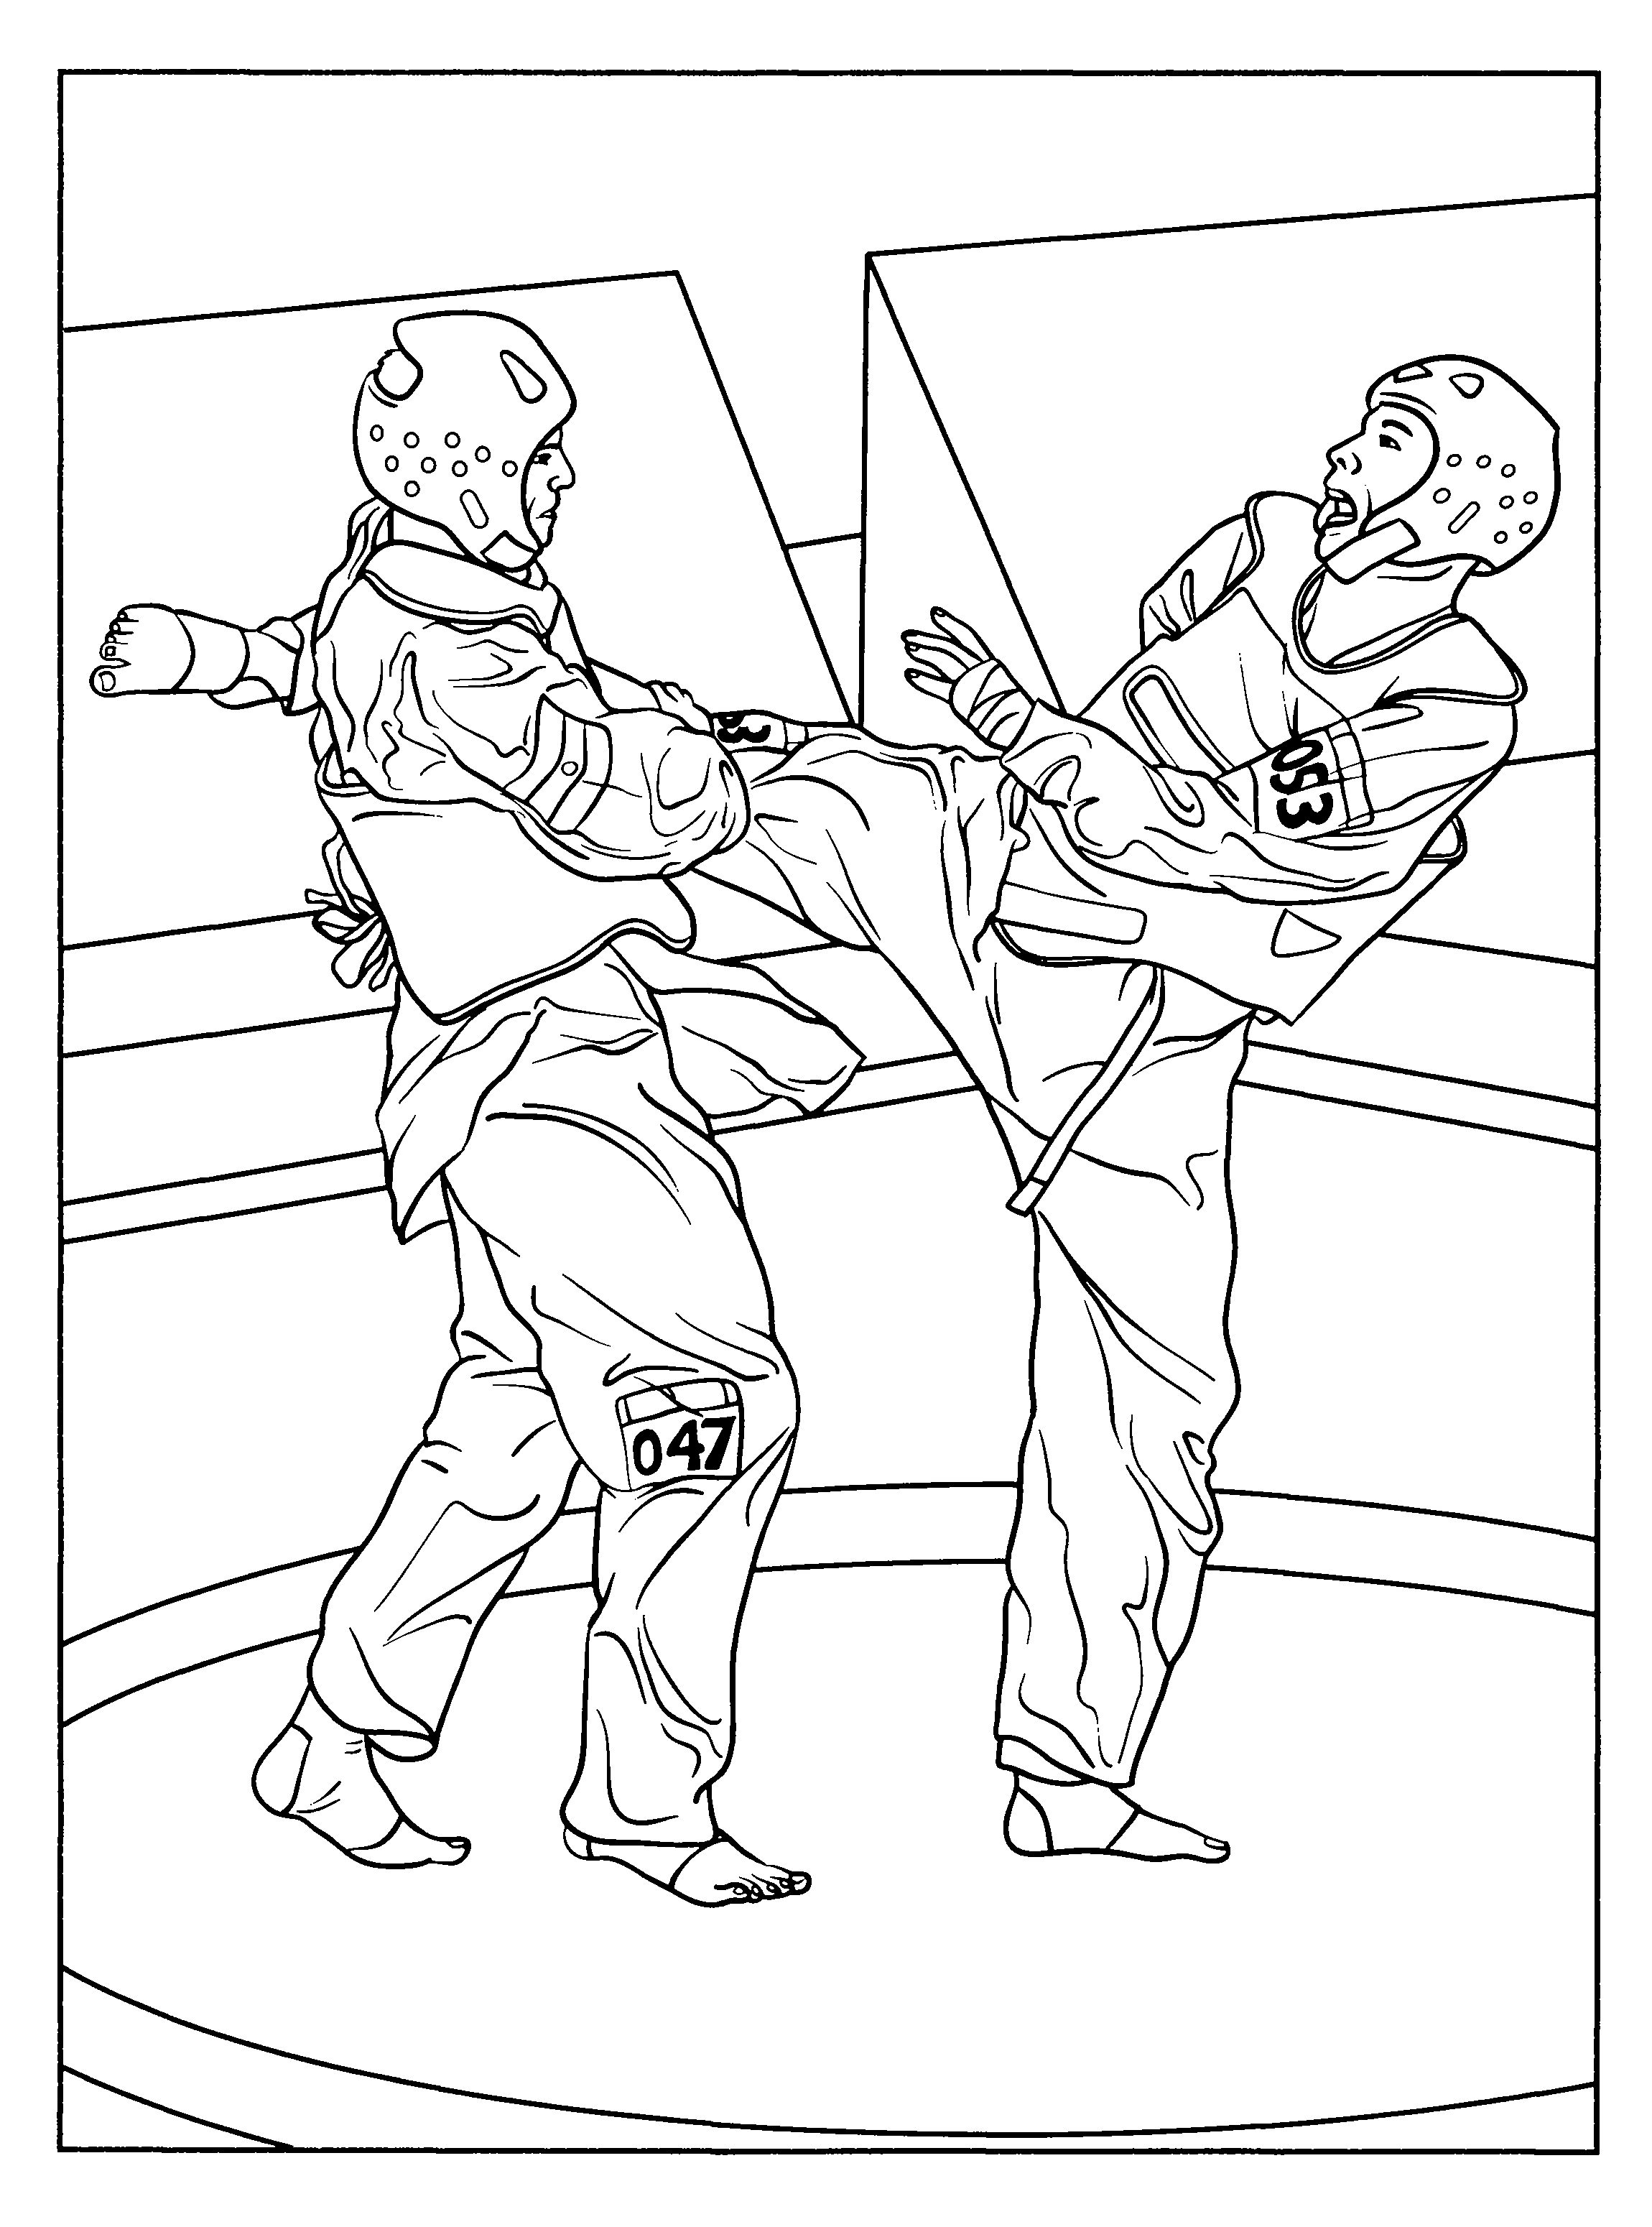 Karate Coloring Pages For Kids Cartoon Coloring Pages Coloring Book Pages Sports Coloring Pages